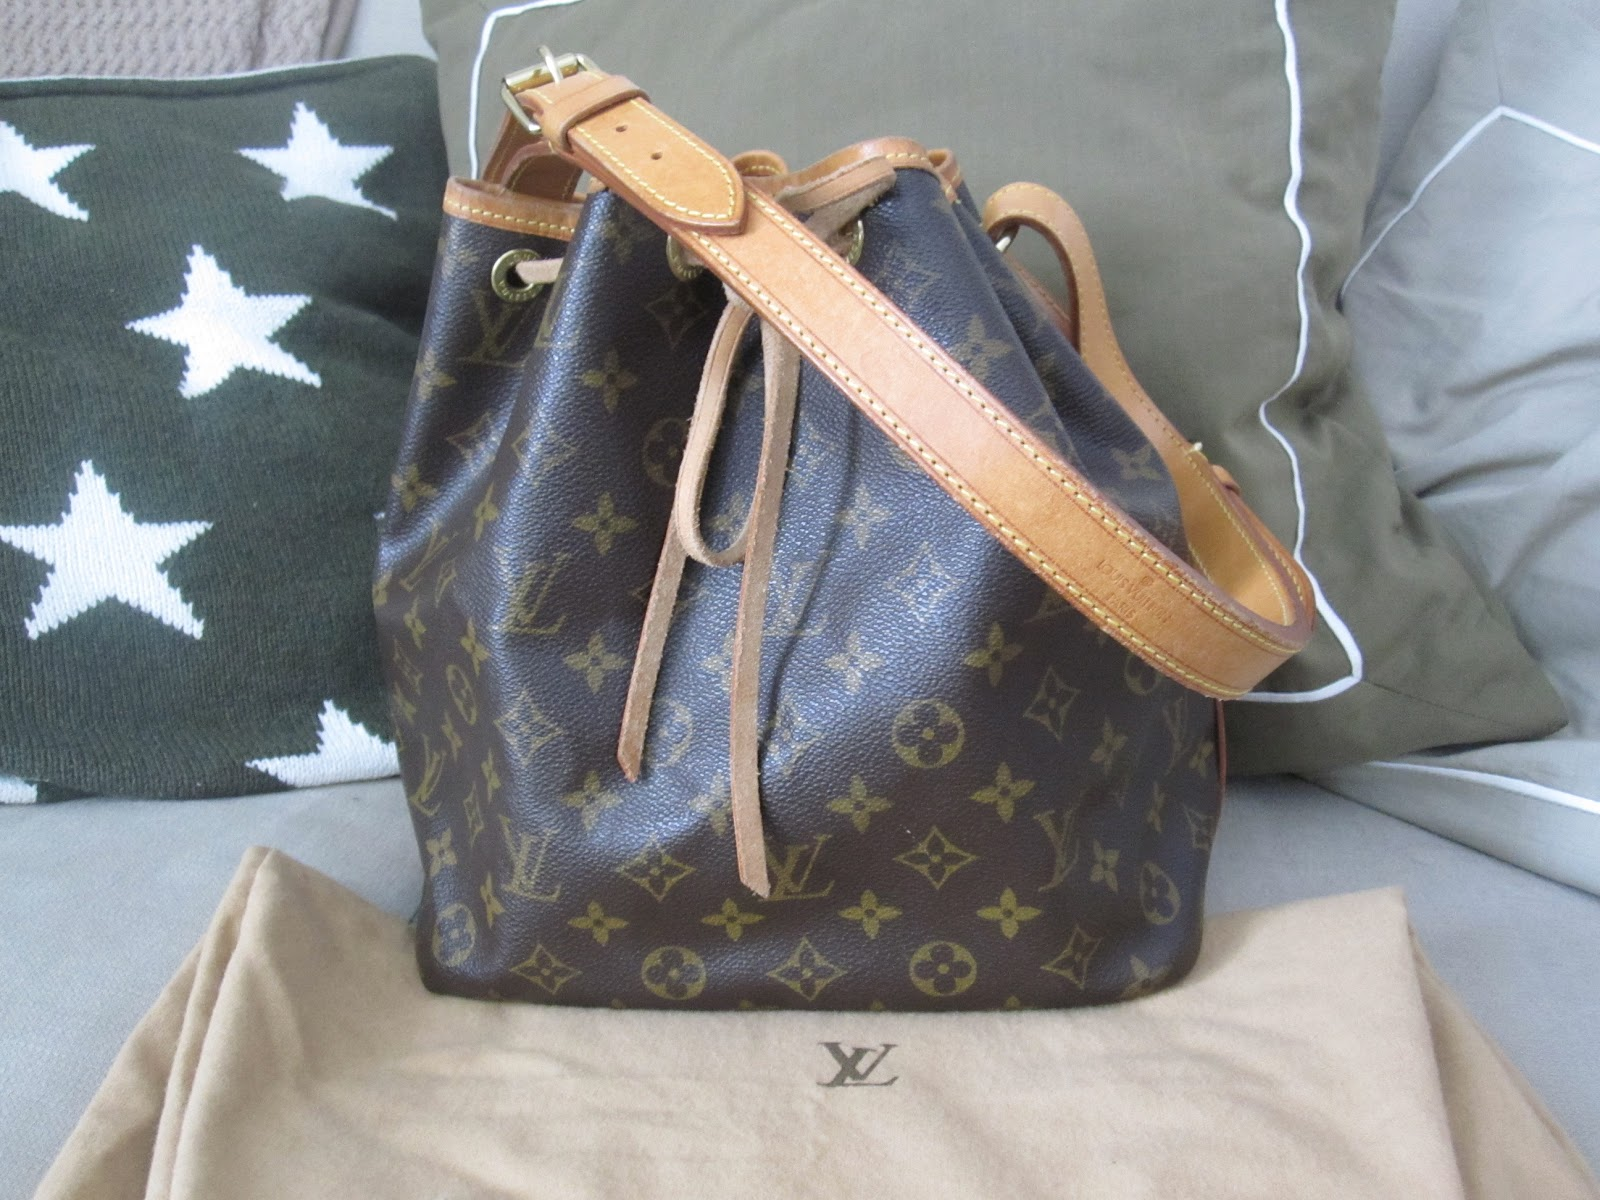 Louis Vuitton Laukku Materiaali : Haveaniceday laukkukokoelmani louis vuitton gucci